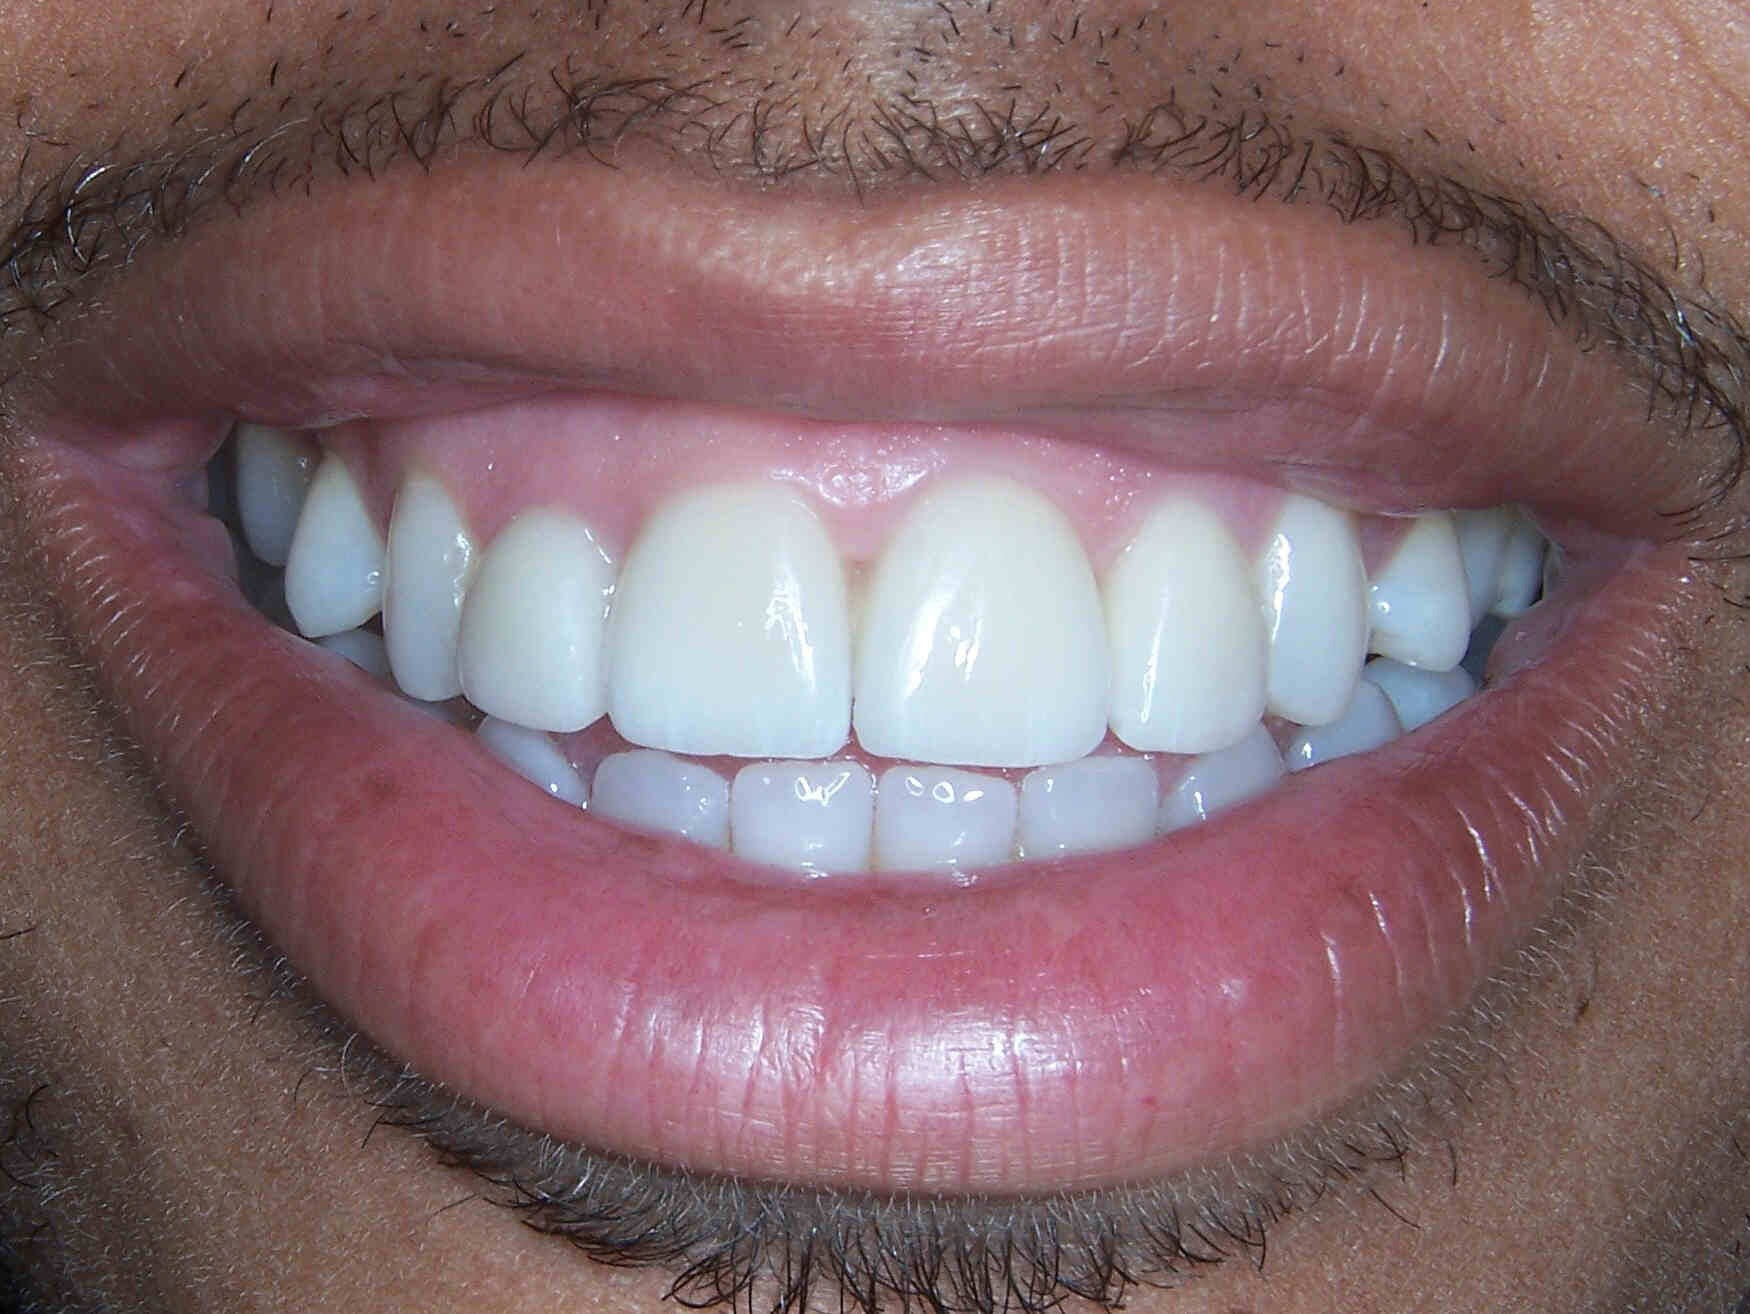 Before and After Dental Crowns & Smile Makeover Photos